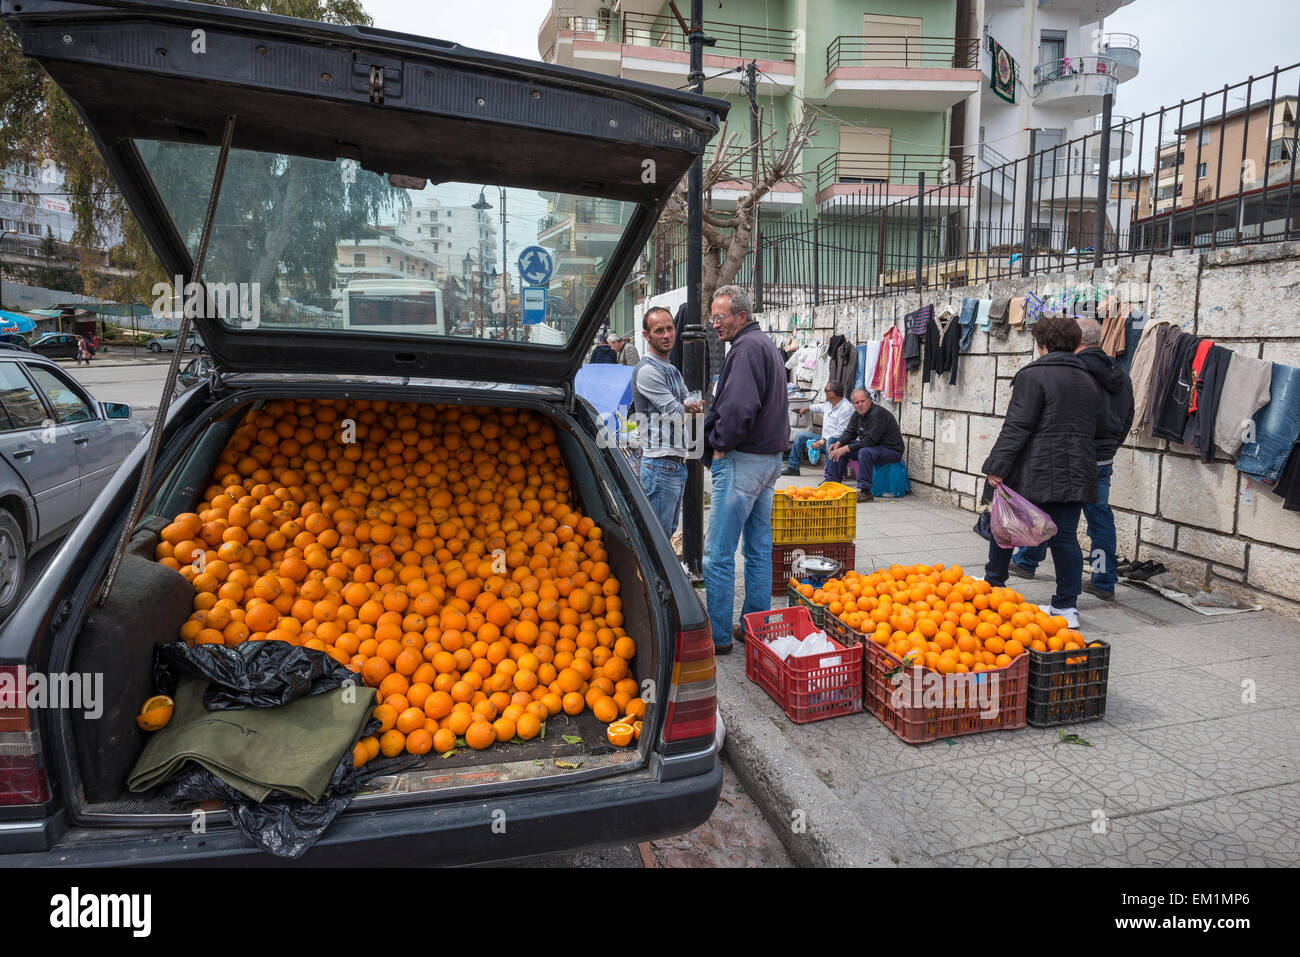 Selling oranges from the back of a Mercedes at a street market in Saranda, Southern Albania. - Stock Image